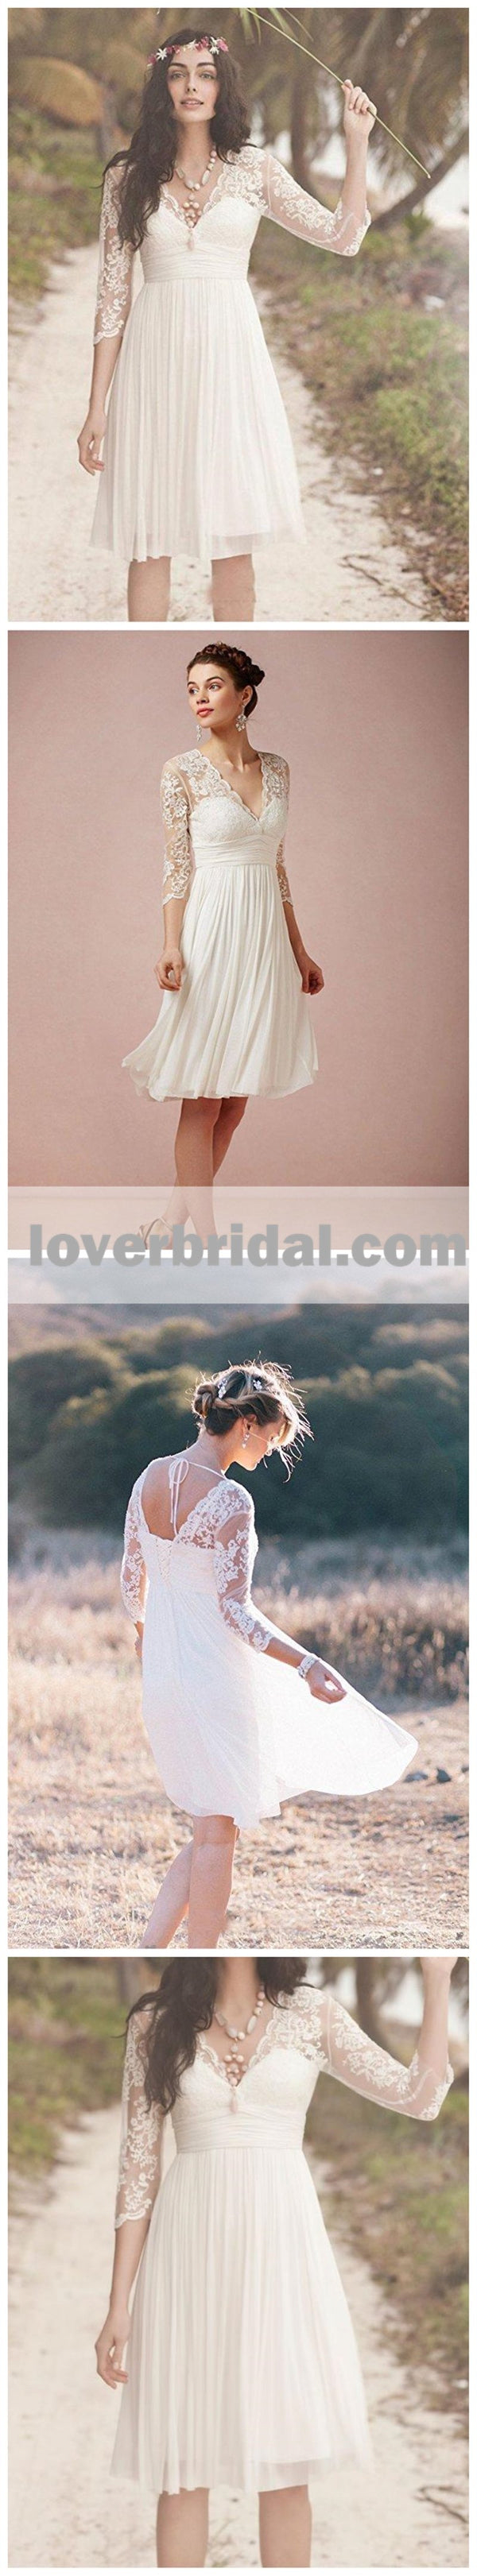 Cheap Long Sleeve Lace Short Beach Wedding Dresses Wd330 Loverbridal,Nice Dress For Wedding Party